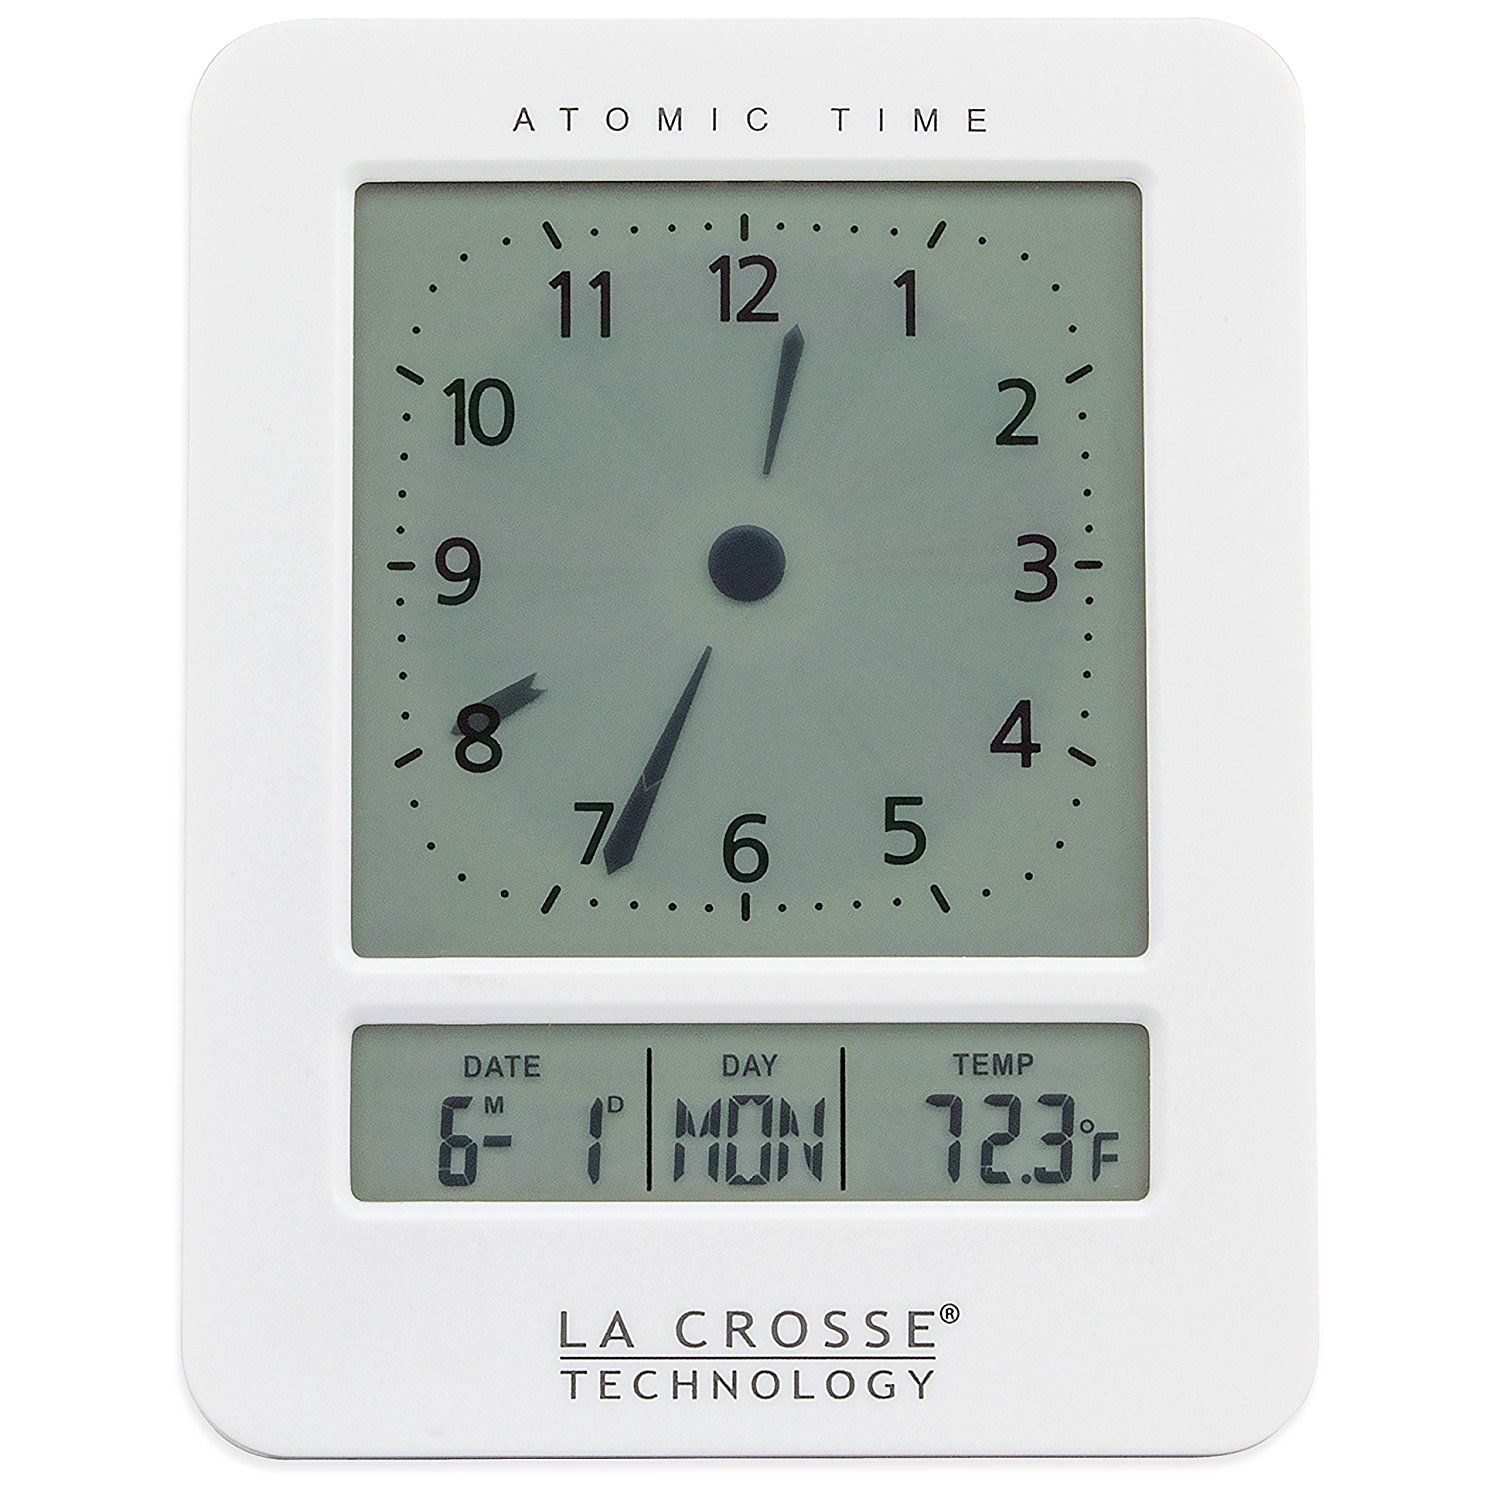 La Crosse Technology 617 1392w Atomic Digital Analog Style Alarm Clock White Be Sure To Check Out This Awesome Product Clock Atomic Wall Clock Alarm Clock